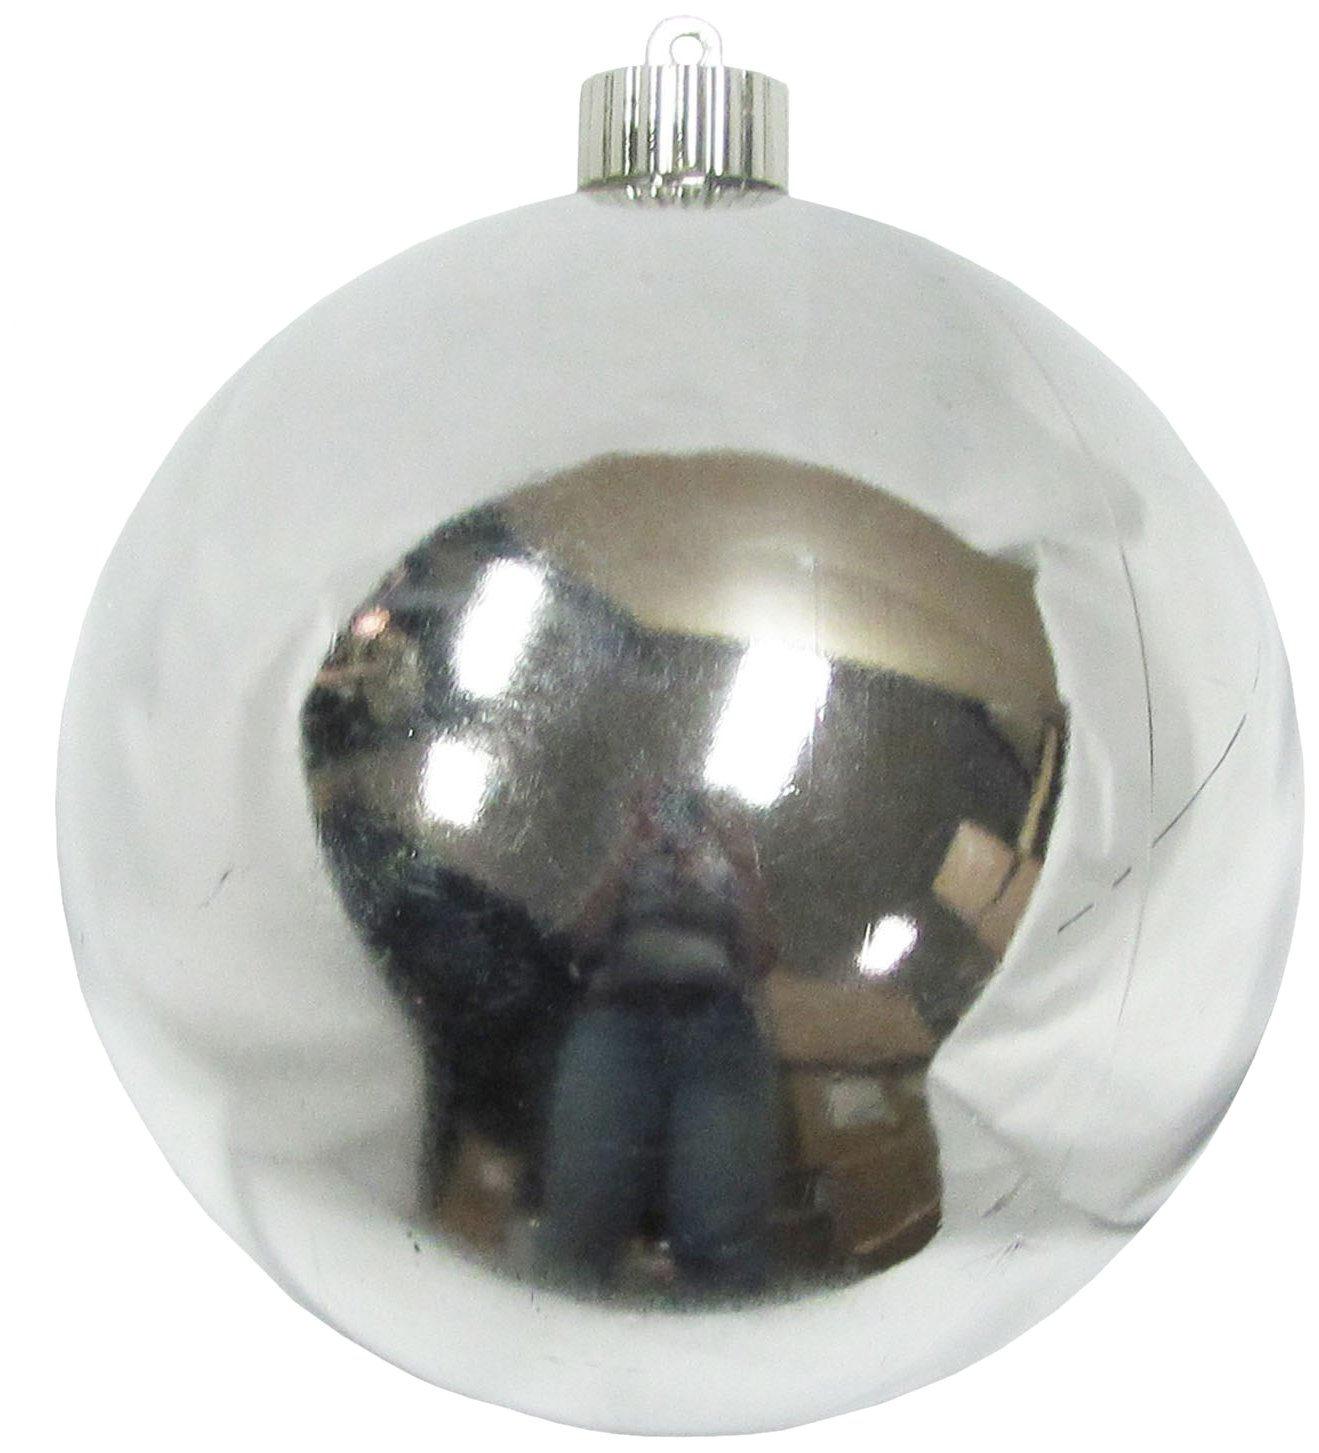 Christmas by Krebs CBK13992 Shatterproof UV-Resistant Christmas Ball Ornaments, Looking Glass, 6''